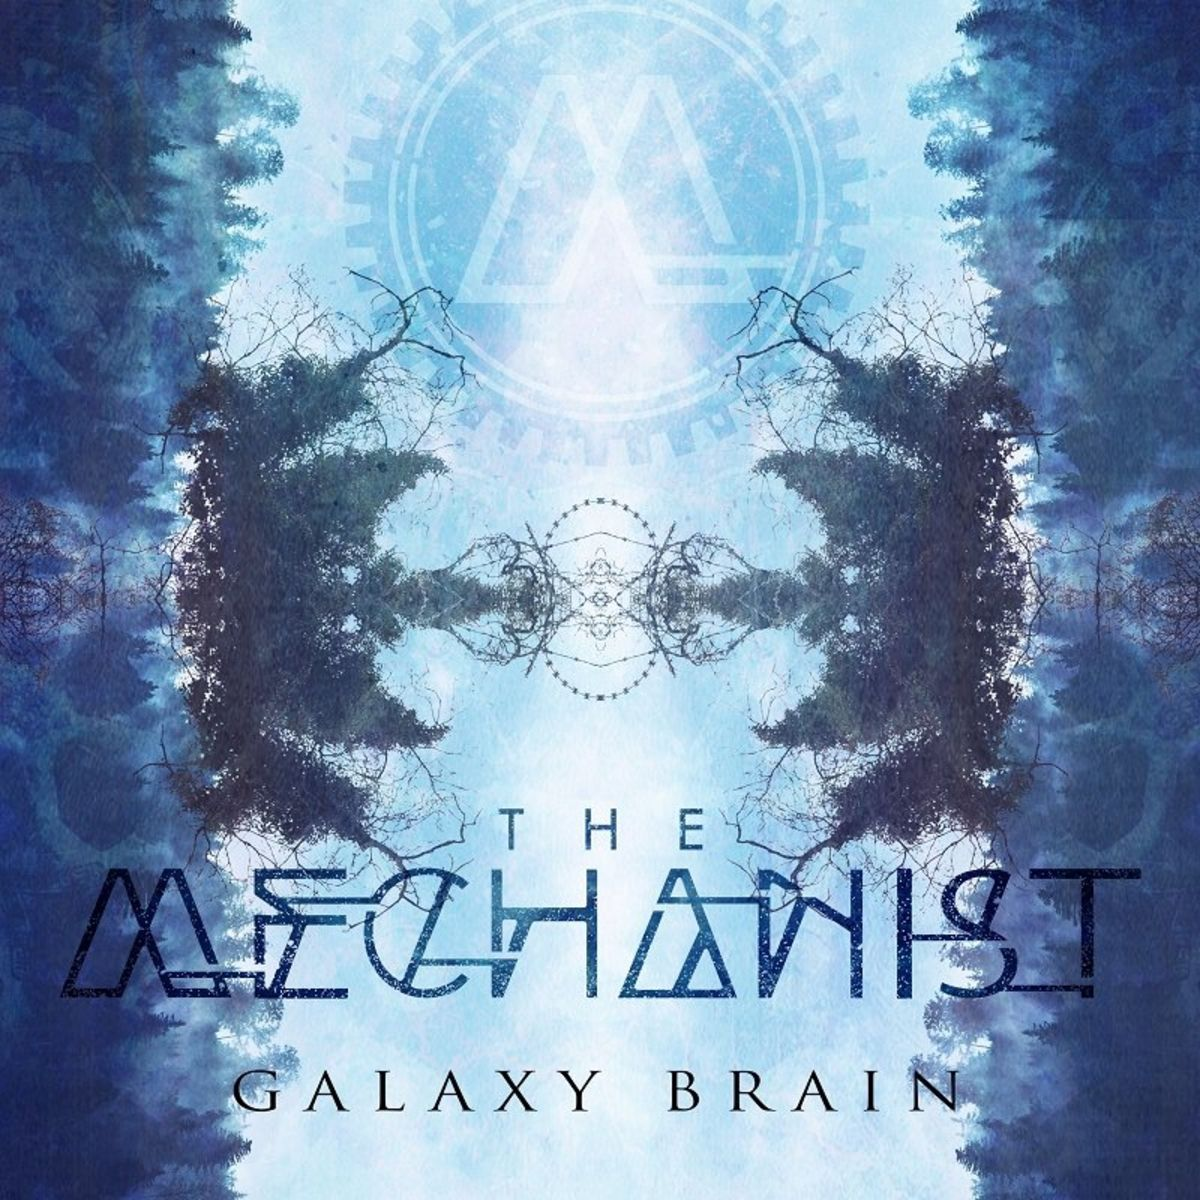 The Mechanist - Galaxy Brain [single] (2021)